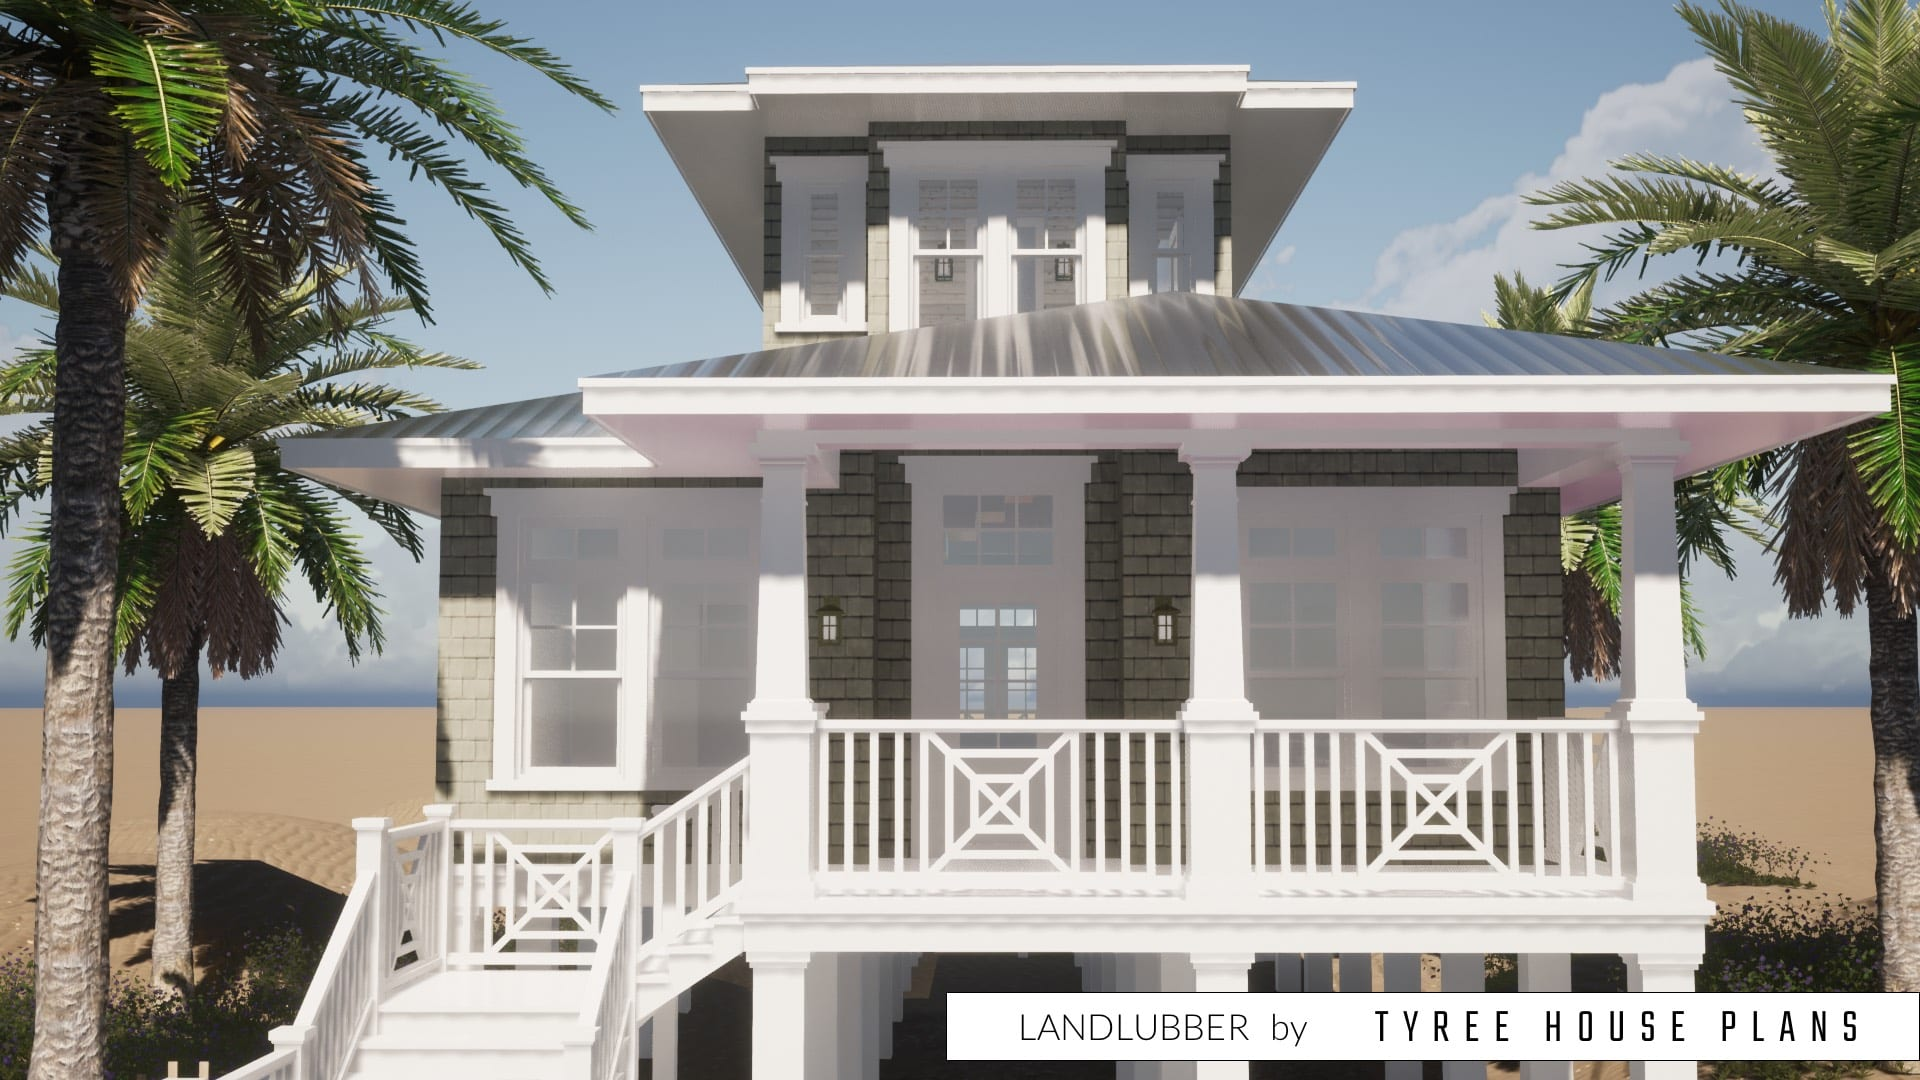 Landlubber House Plan by Tyree House Plans